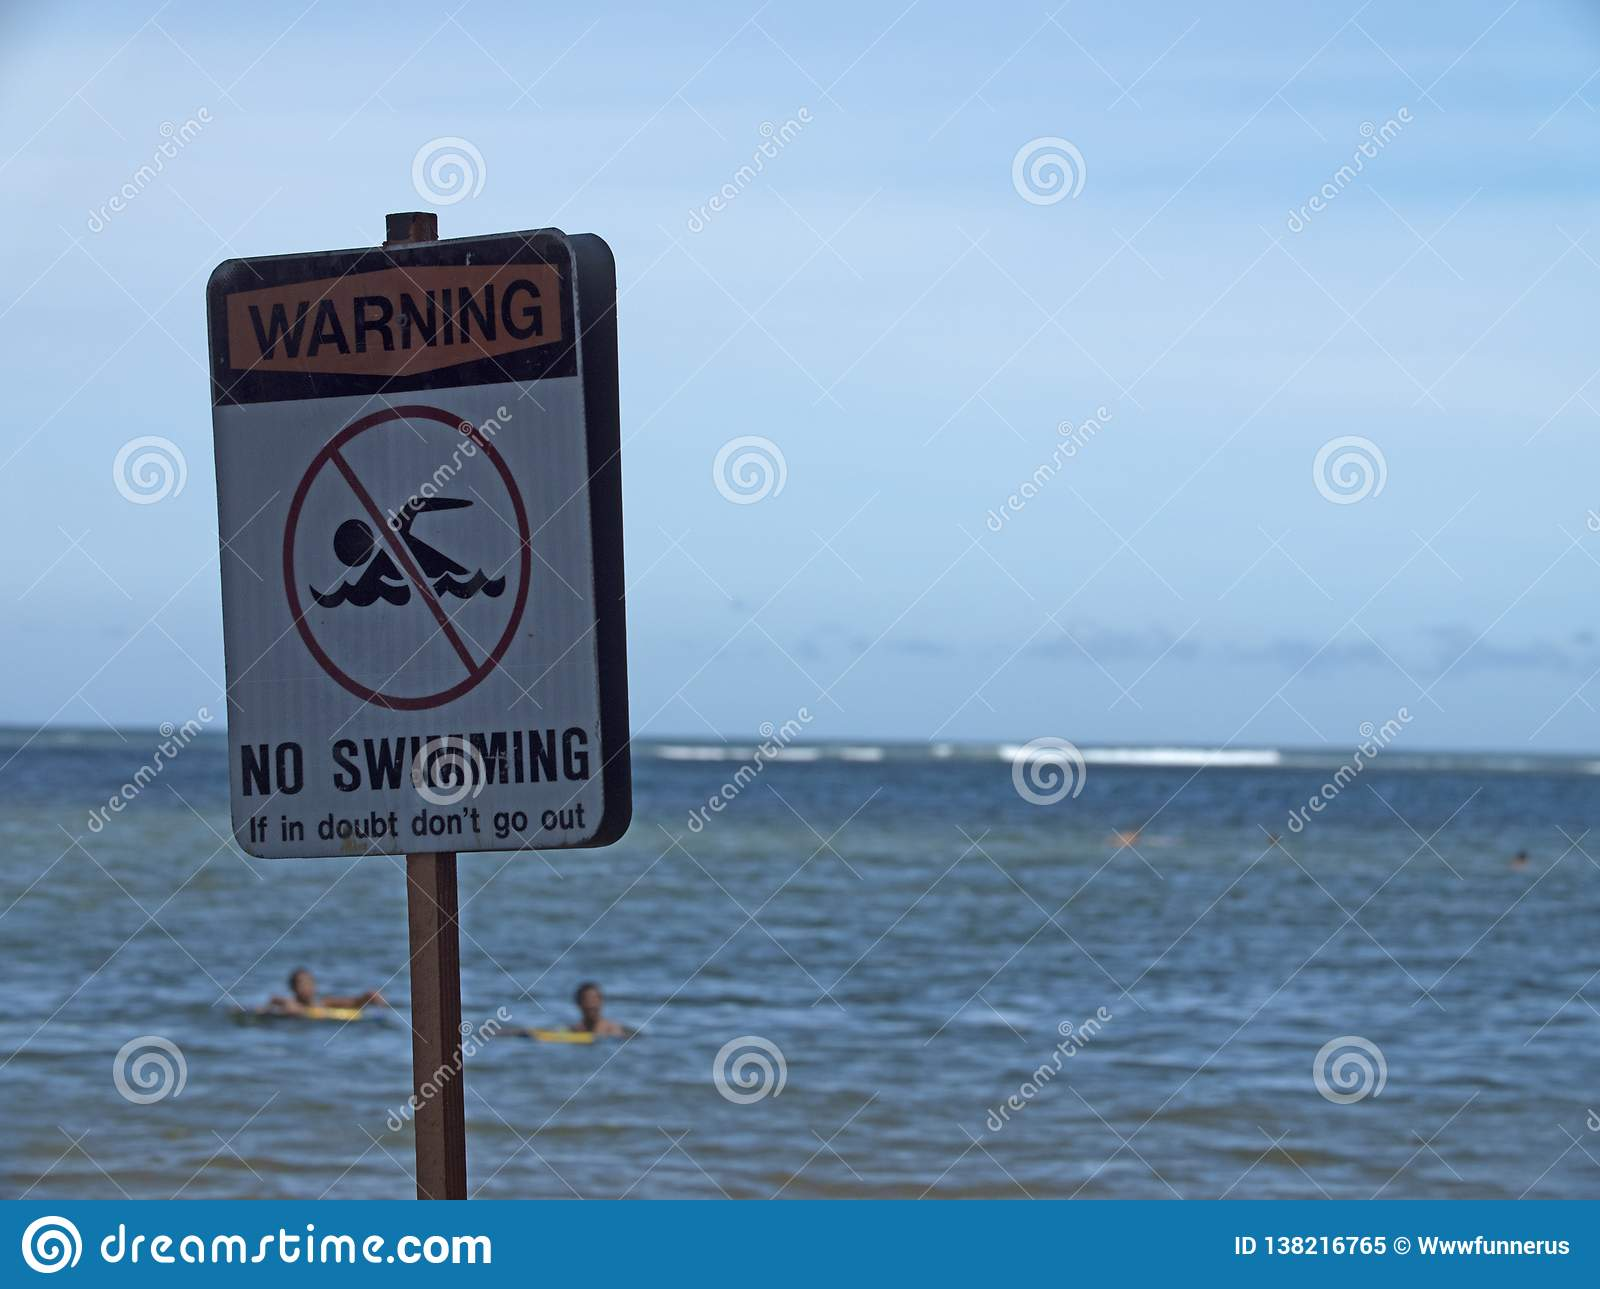 No Swimming Sign - Danger Concept - People in Water